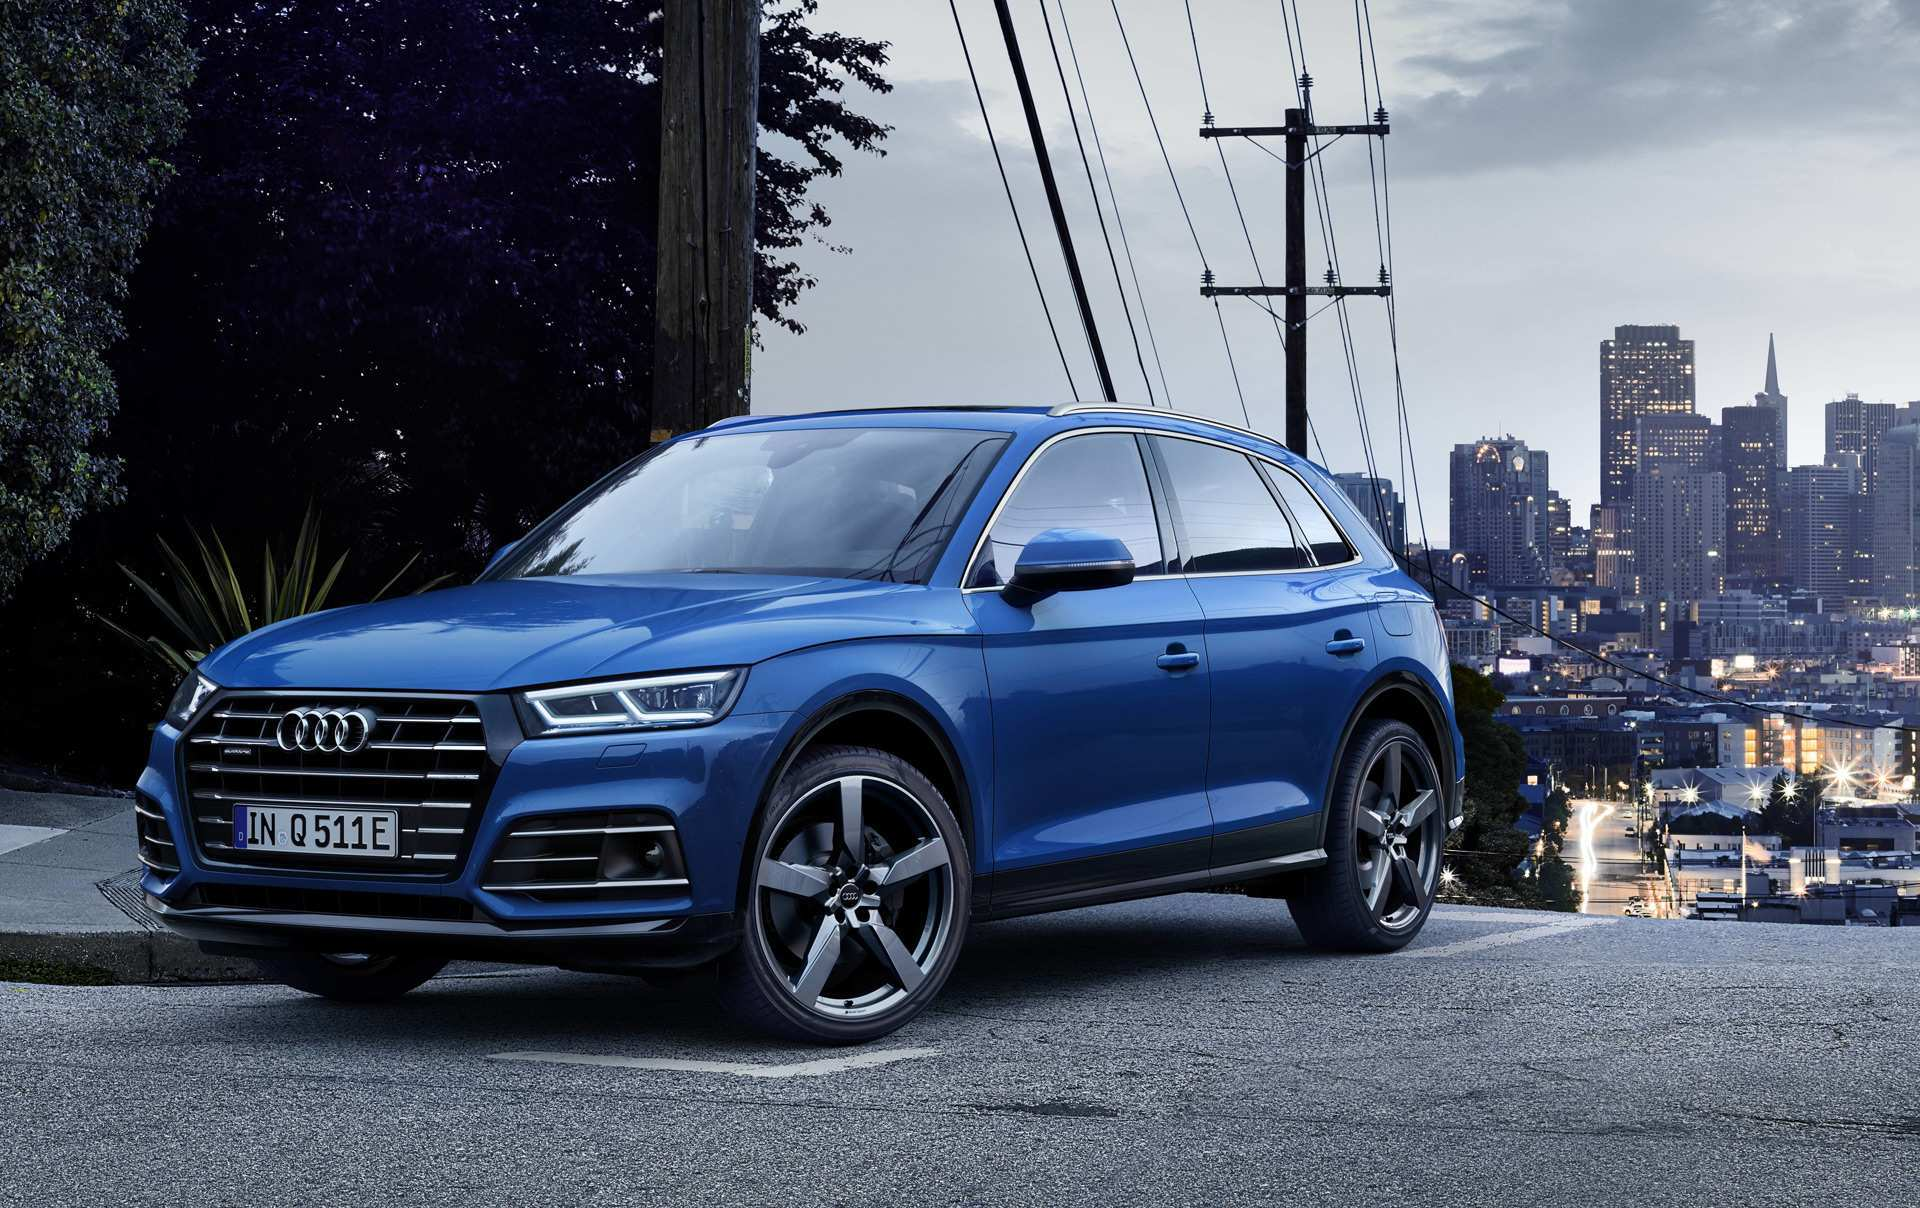 76 Best Review Audi Sq5 2020 New Review for Audi Sq5 2020